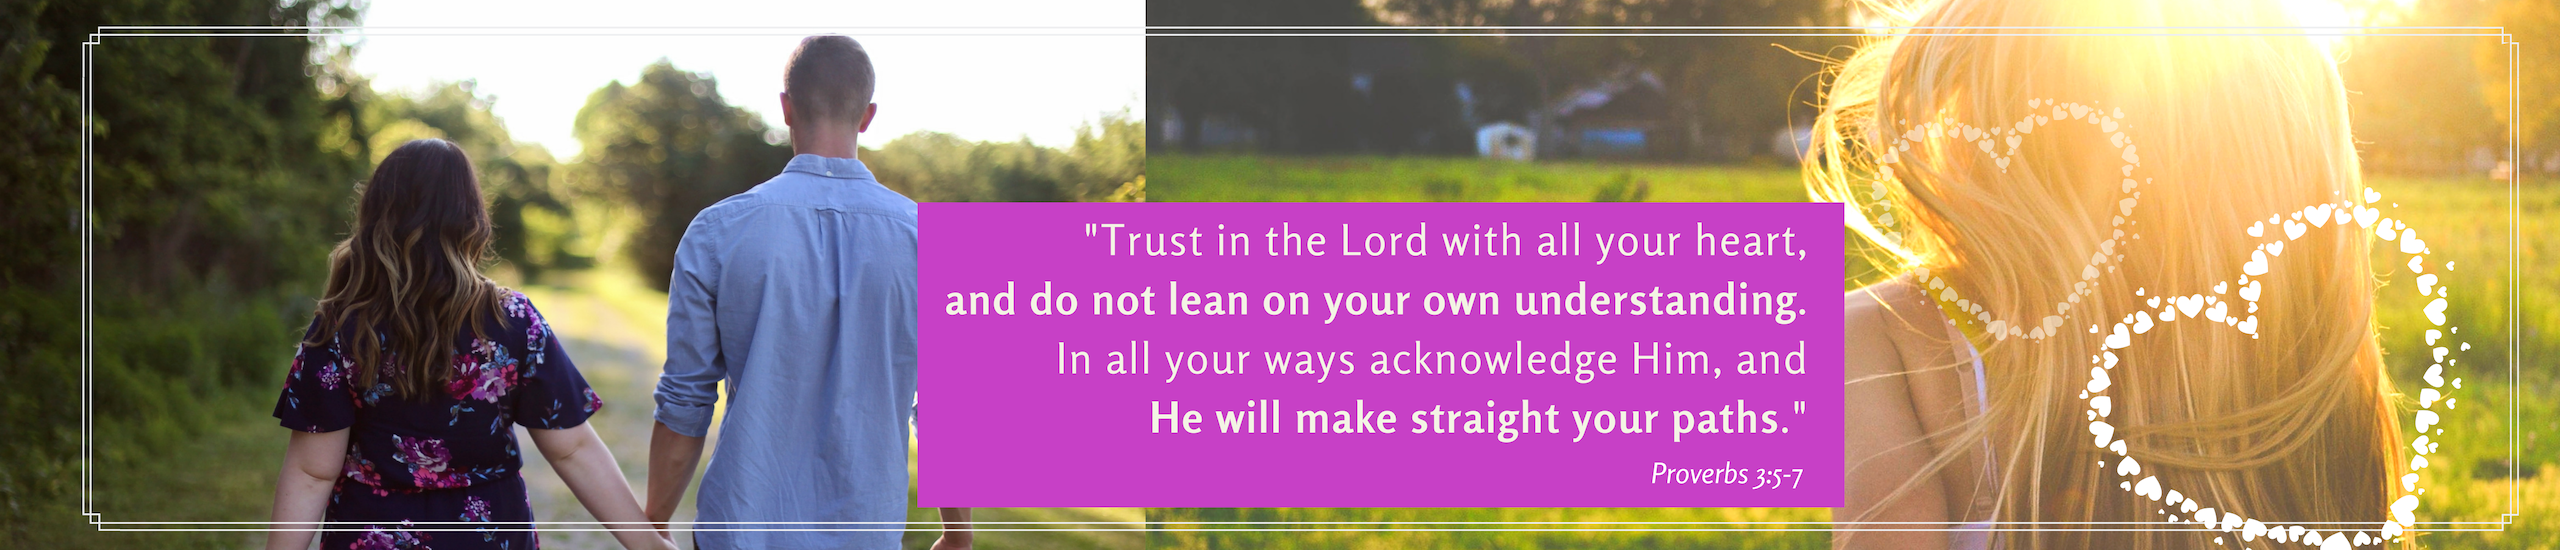 "Scripture ""Trust in the Lord with all your heart and do not lean on your own understanding.  In all your ways acknowledge Him, and He will make straight your paths."" Proverbs 3:5-7"